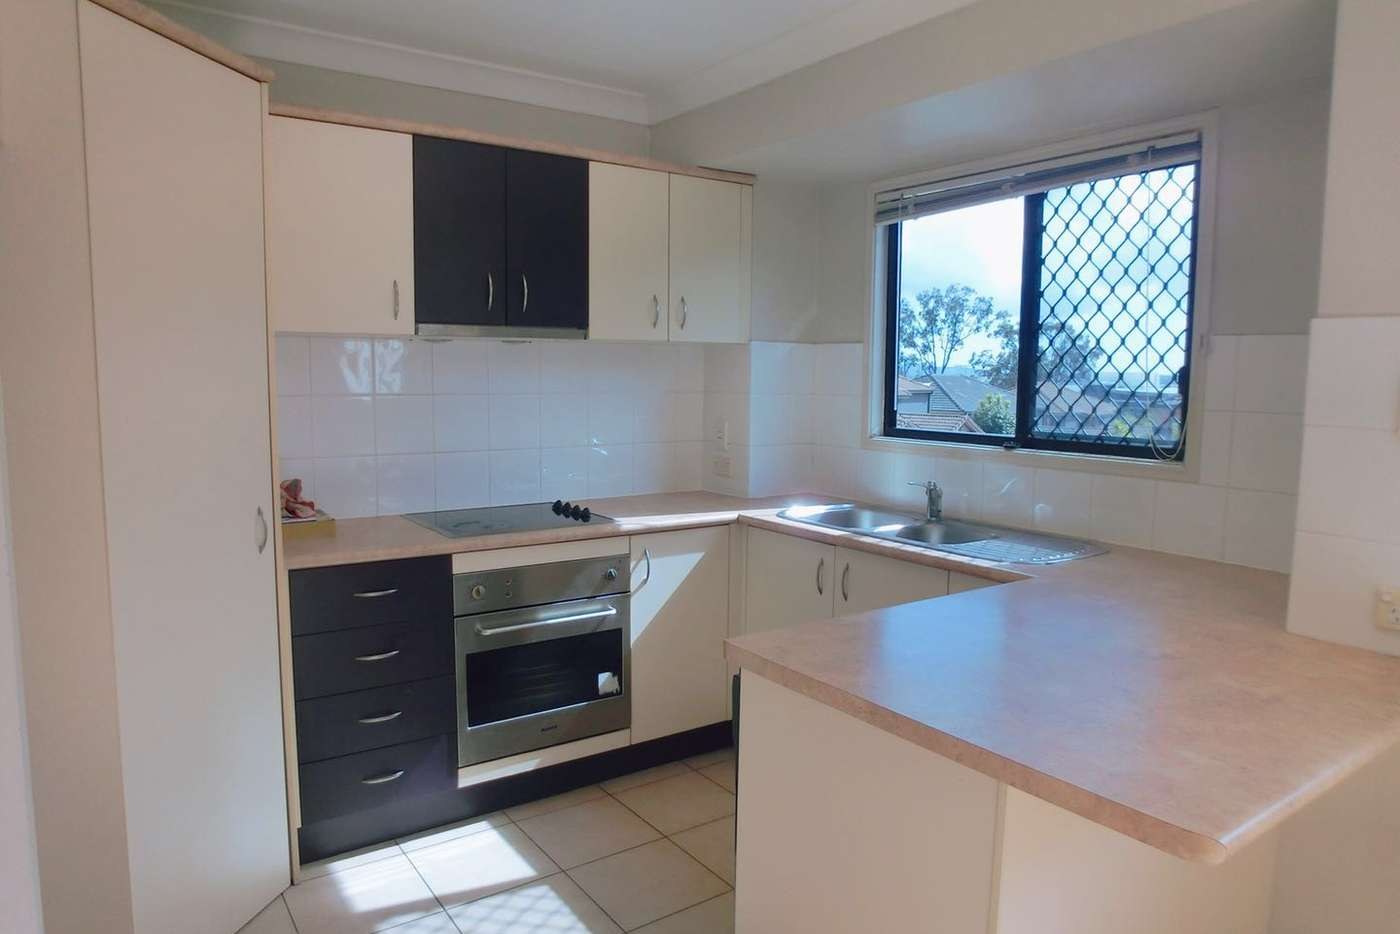 Sixth view of Homely townhouse listing, 9 San Mateo Blvd, Eight Mile Plains QLD 4113